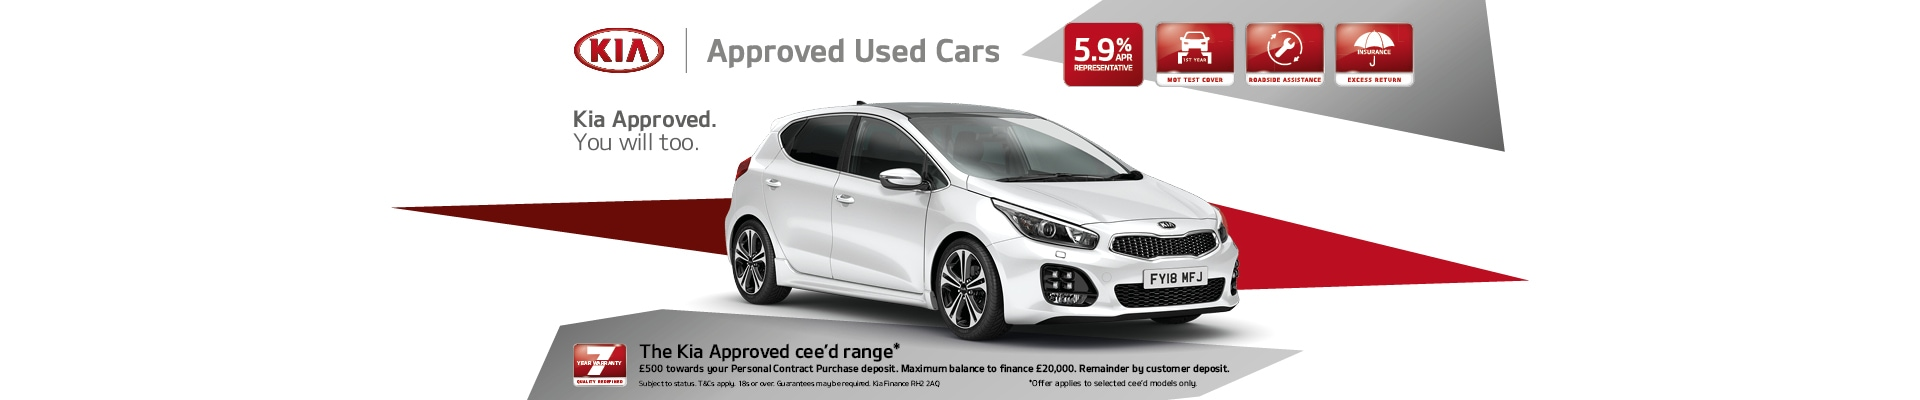 kia used car offer